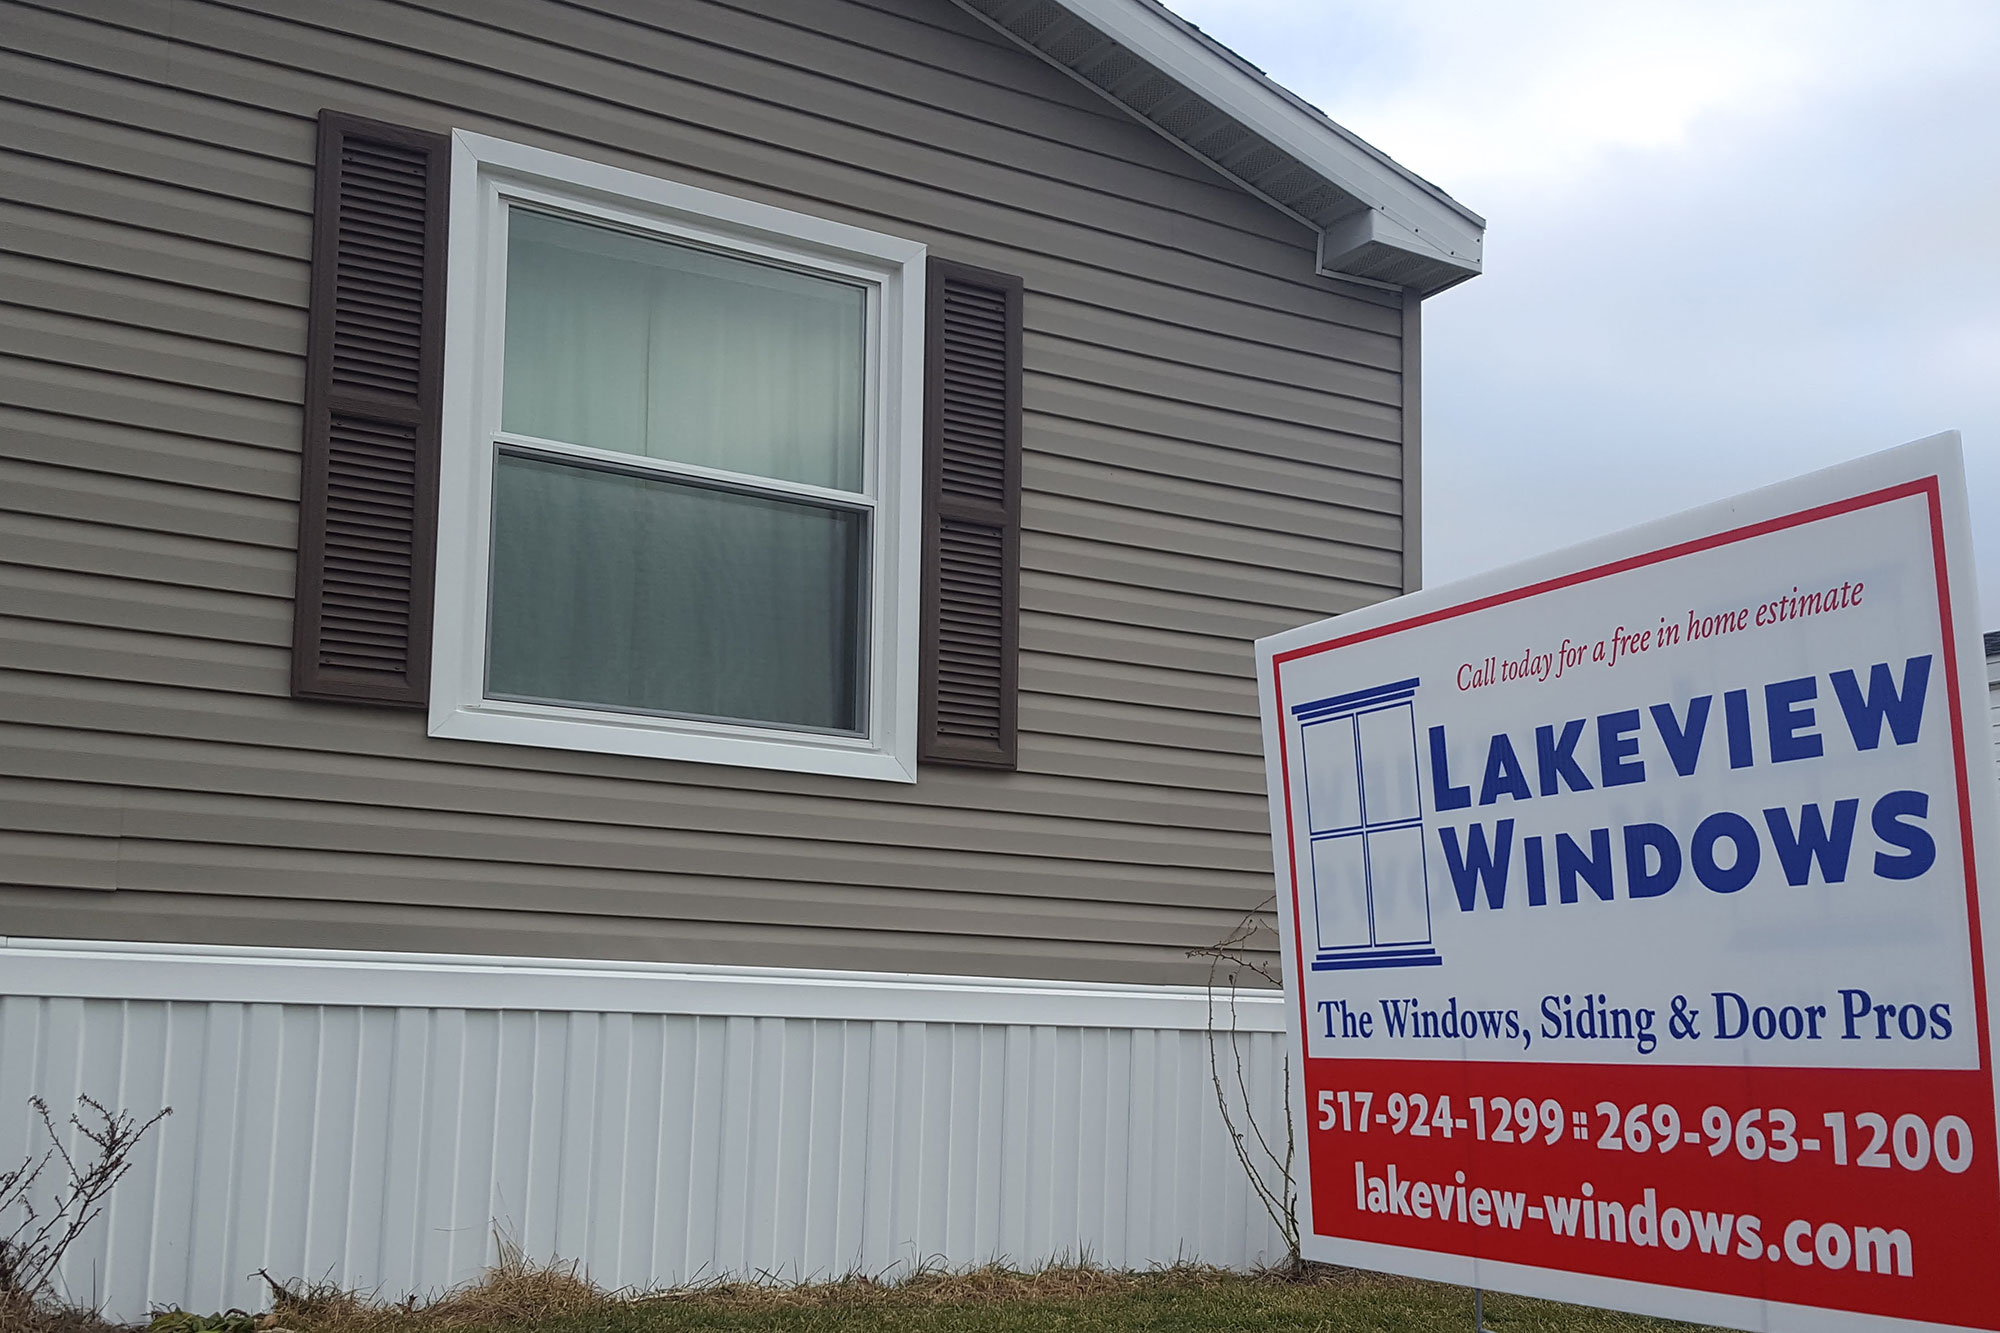 Mobile Home Windows Replacing Windows And Doors For